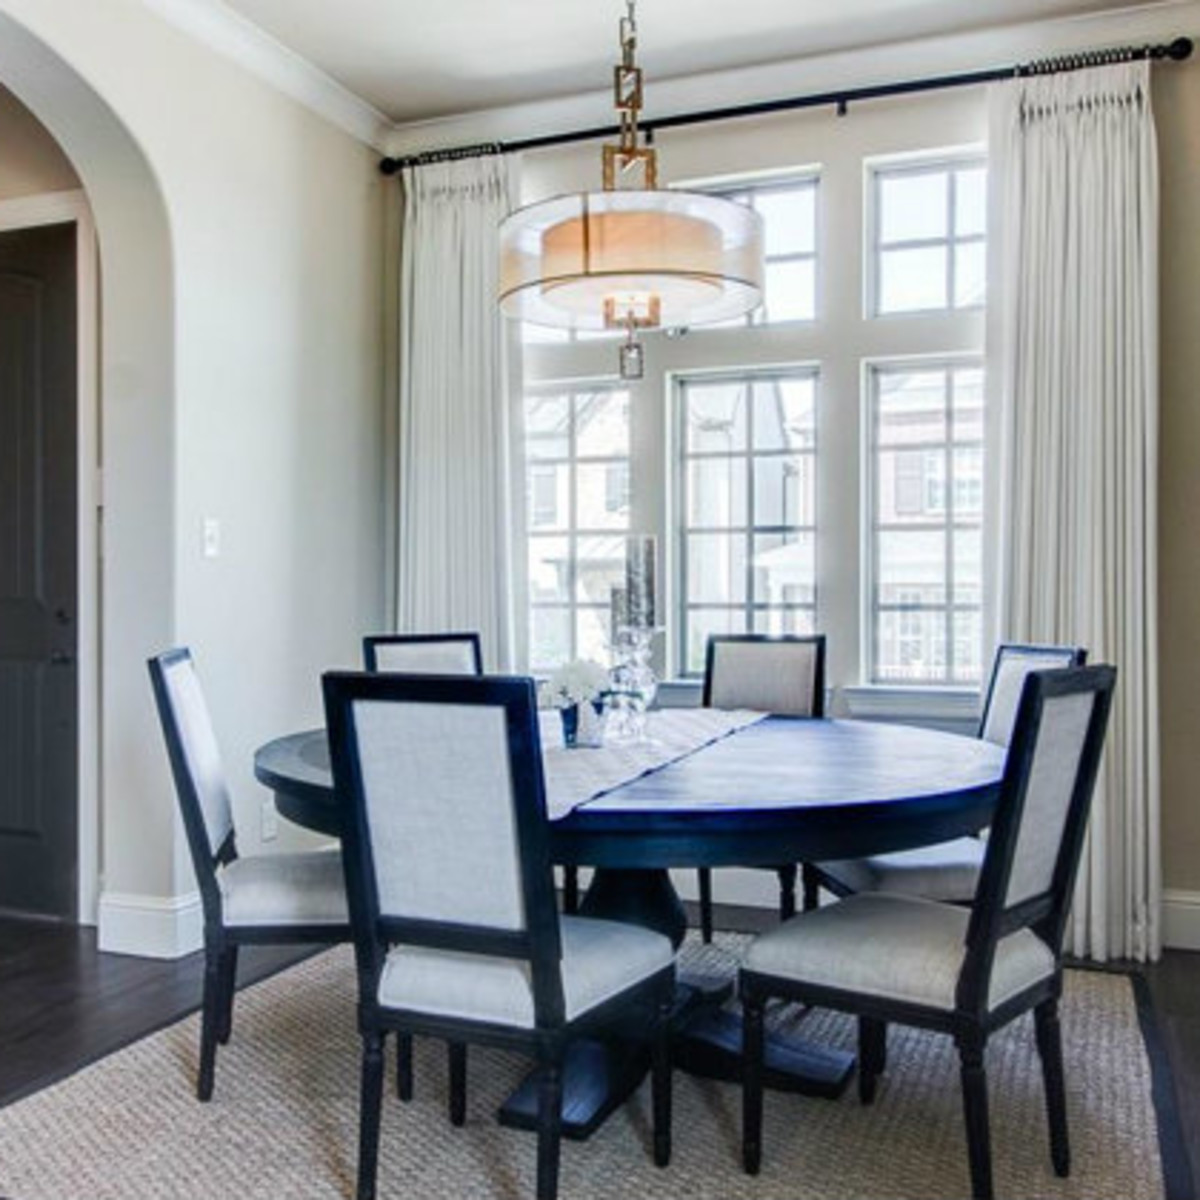 Dining room at 2272 Longwood Dr. in Carrollton